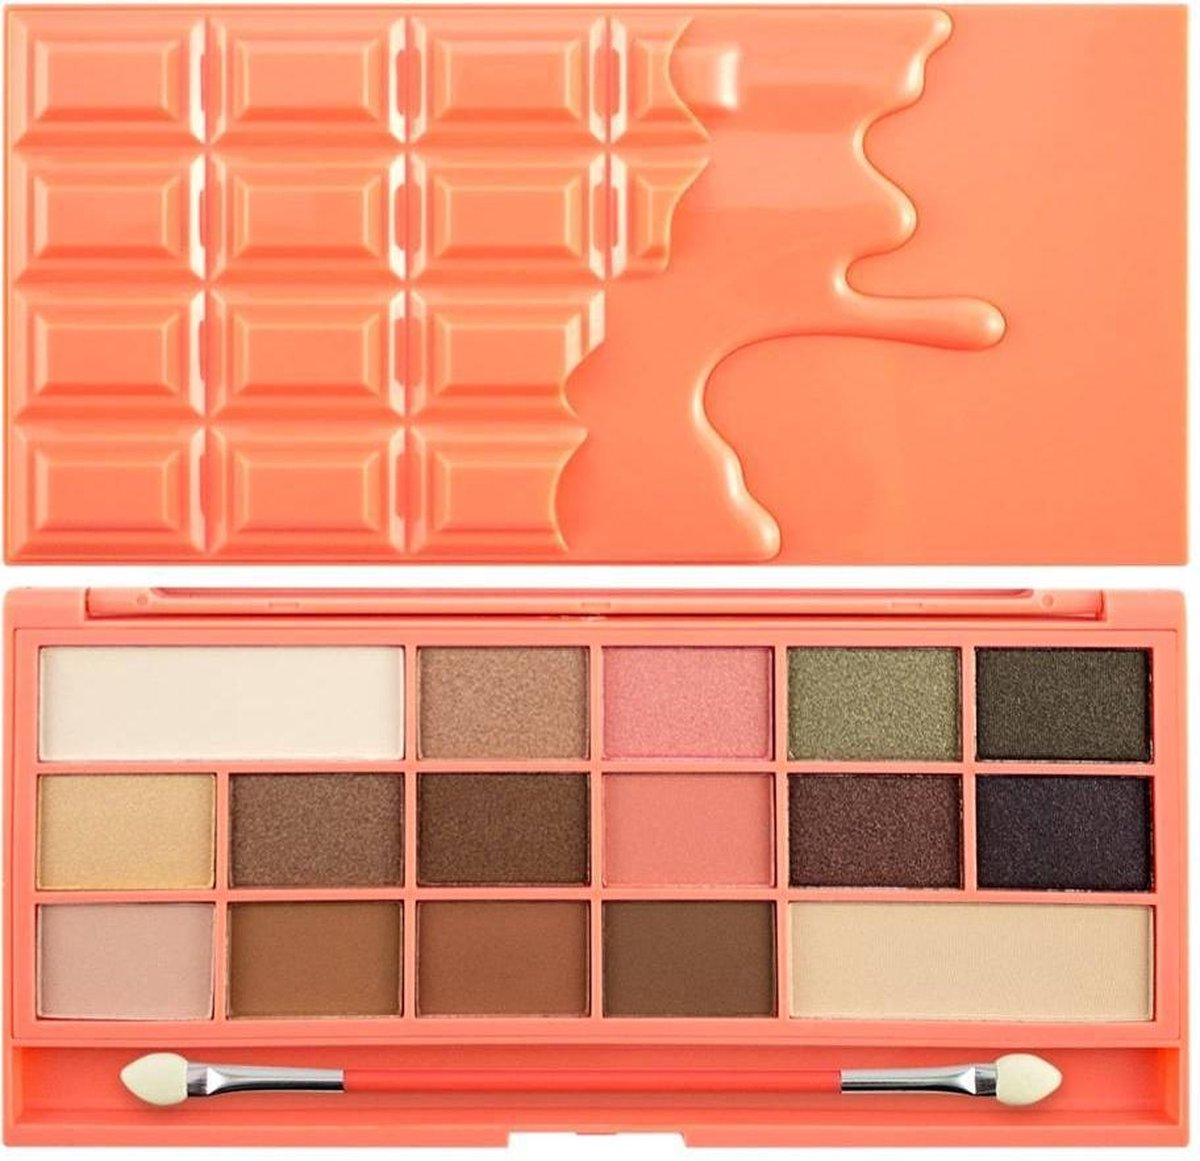 I Heart Revolution I Heart Chocolate & Peaches Palette - I Heart Revolution